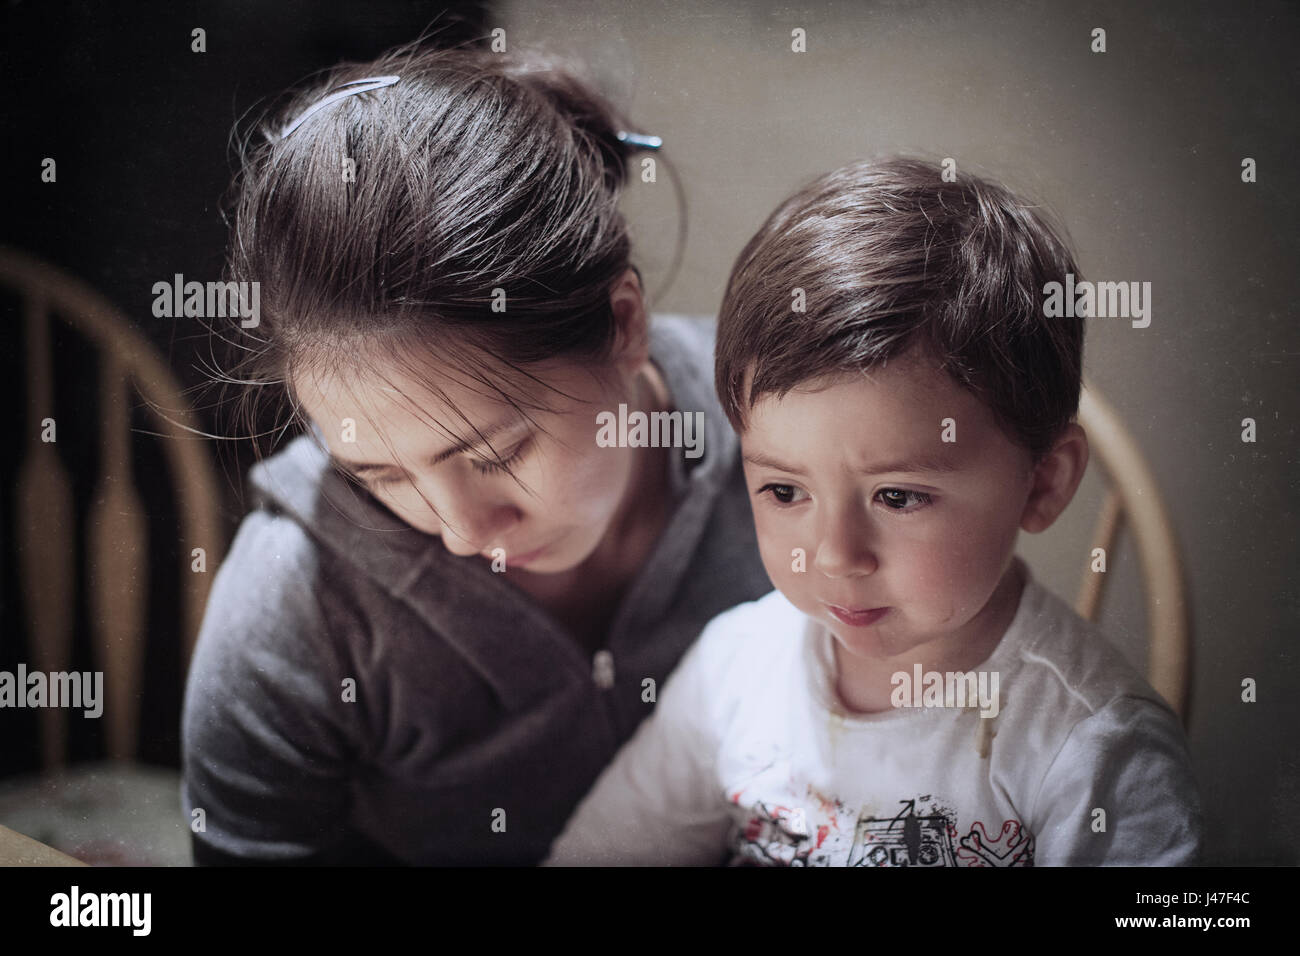 Dramatic portrait of a young Asian woman and her young son mourning the death of a father Stock Photo